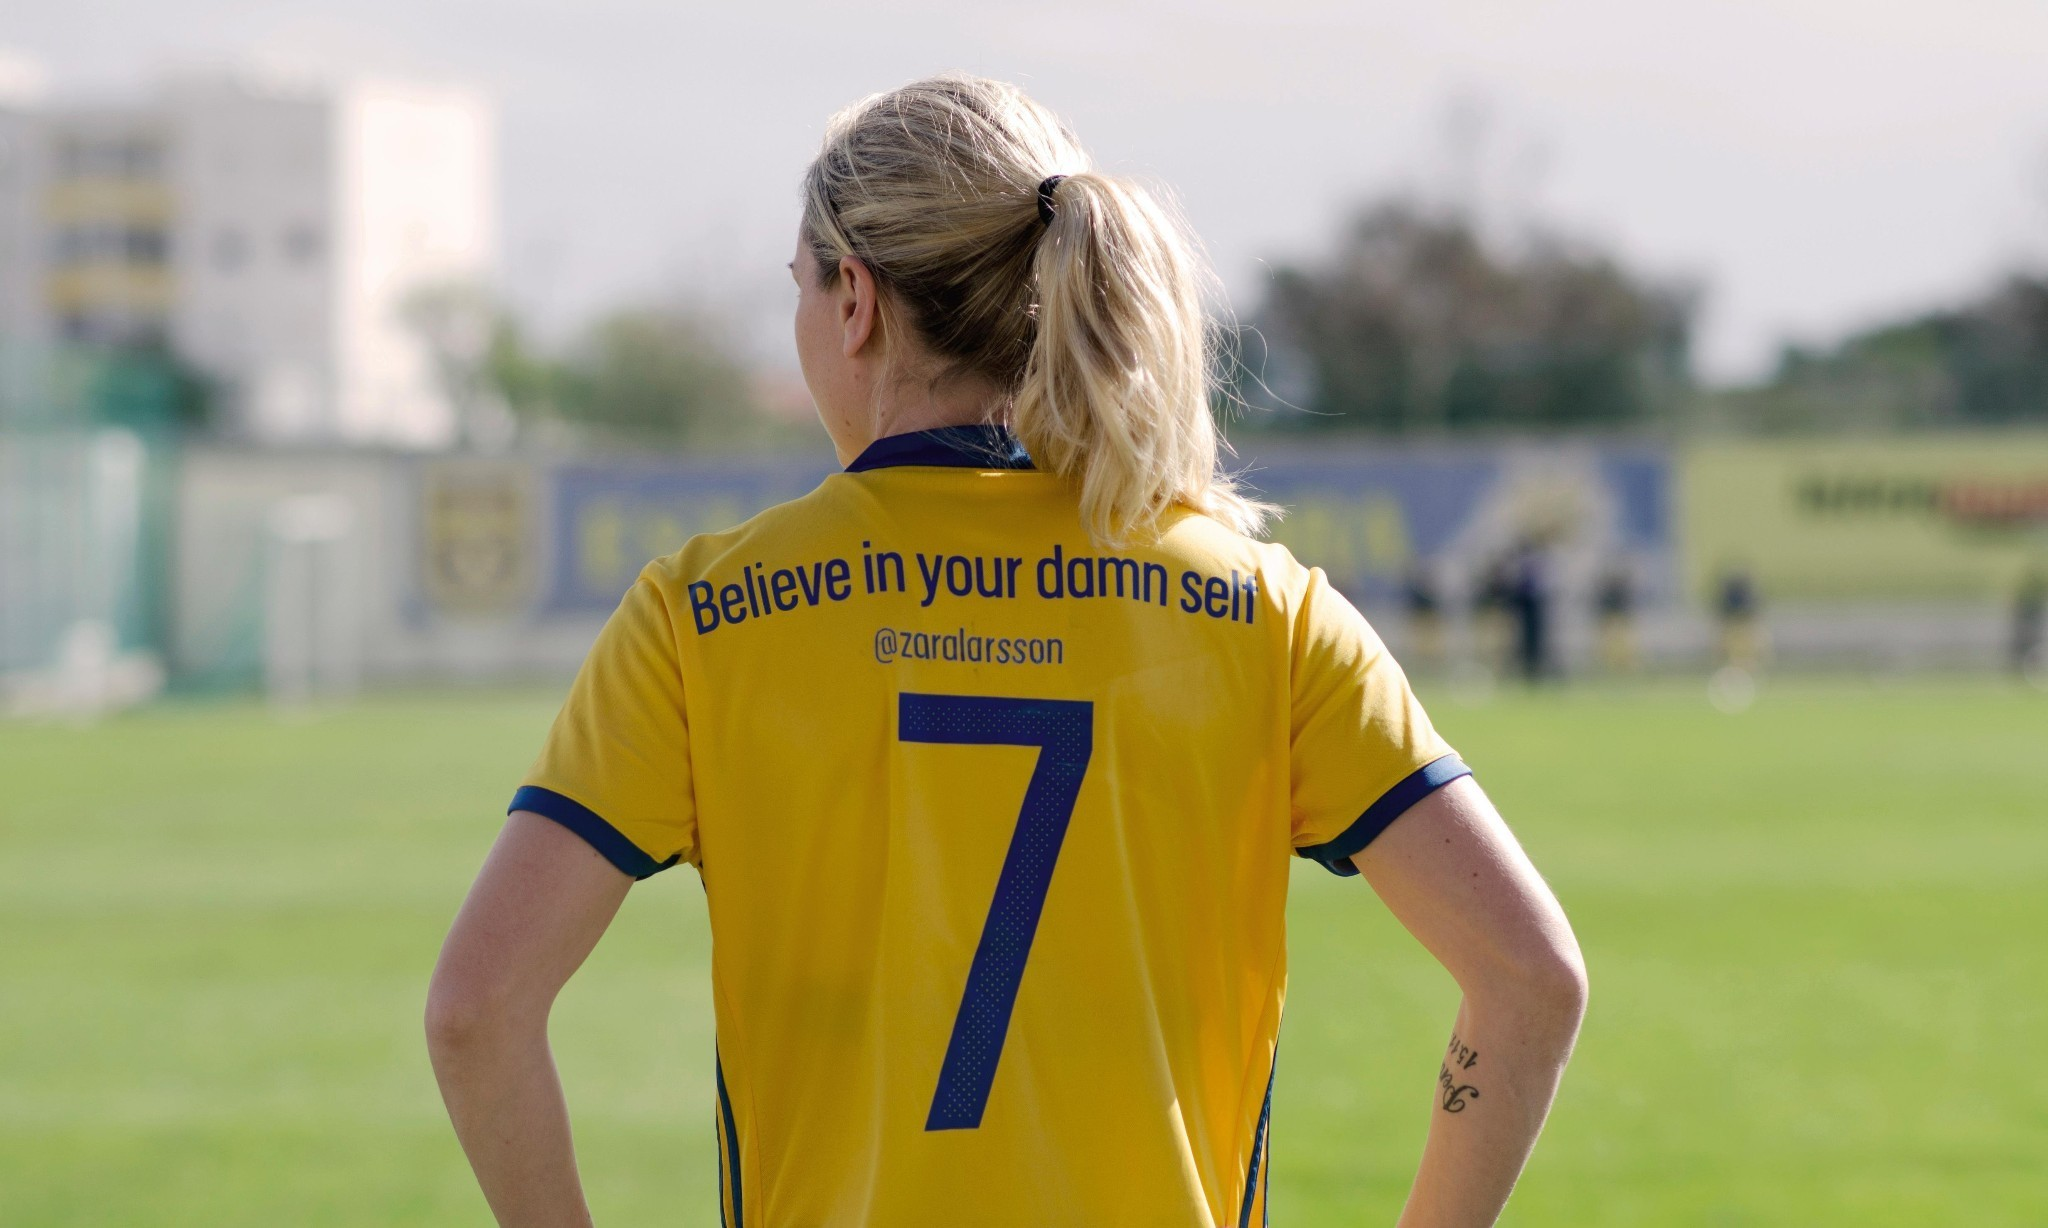 Swedish women's team replace shirt names with messages of empowerment